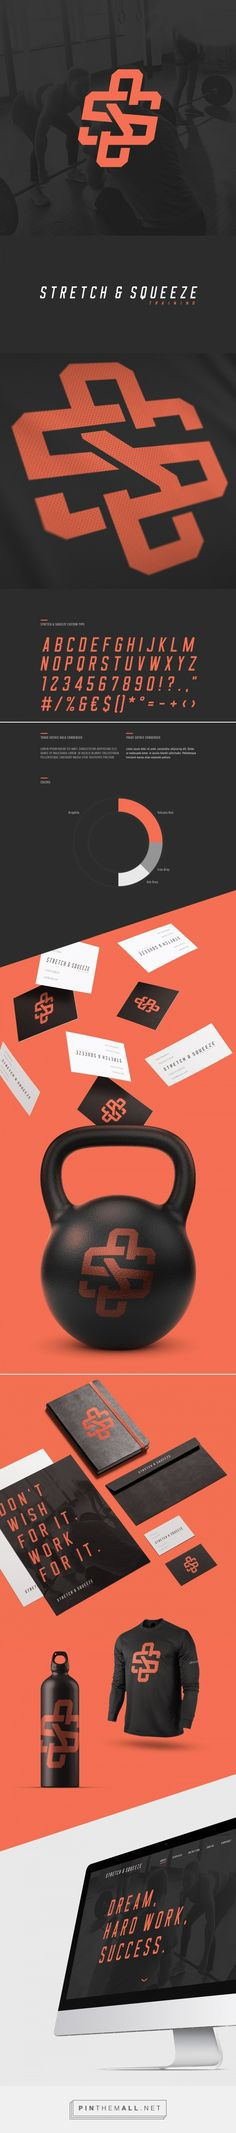 Stretch and Squeeze Training by Miika Kumpulainen on Behance | Fivestar Branding – Design and Branding Agency & Inspiration Gallery